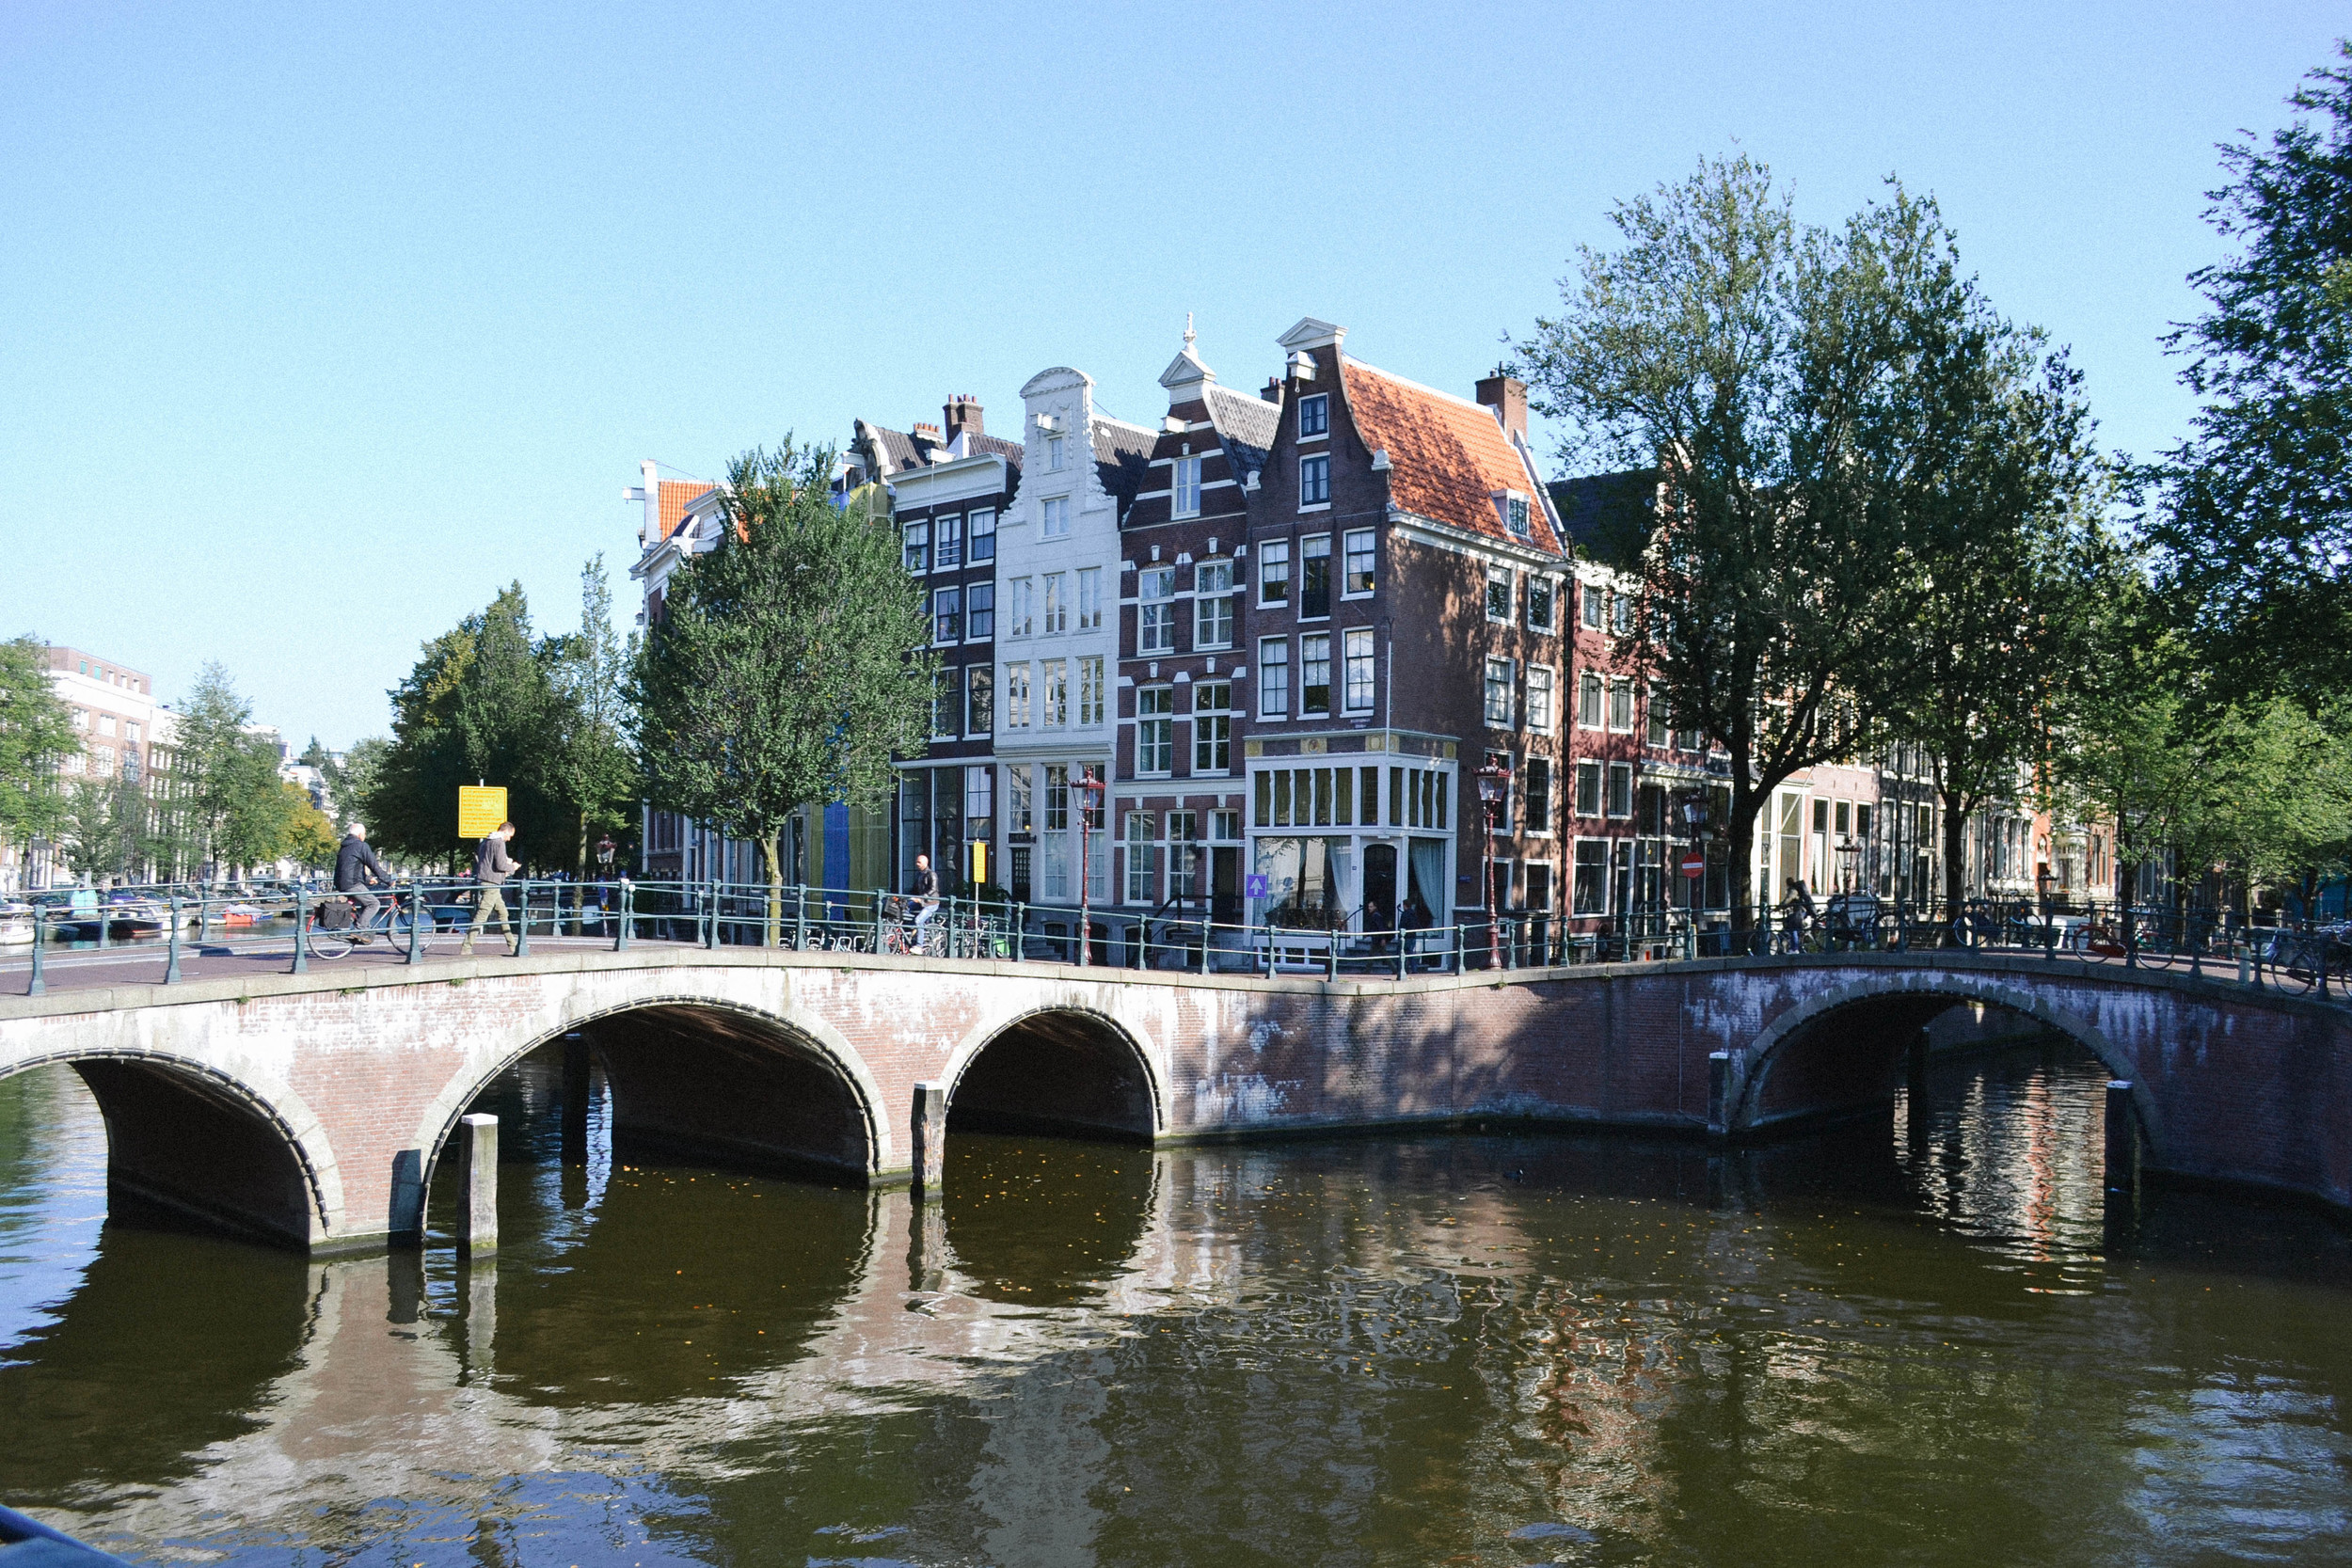 The canals in the city centre